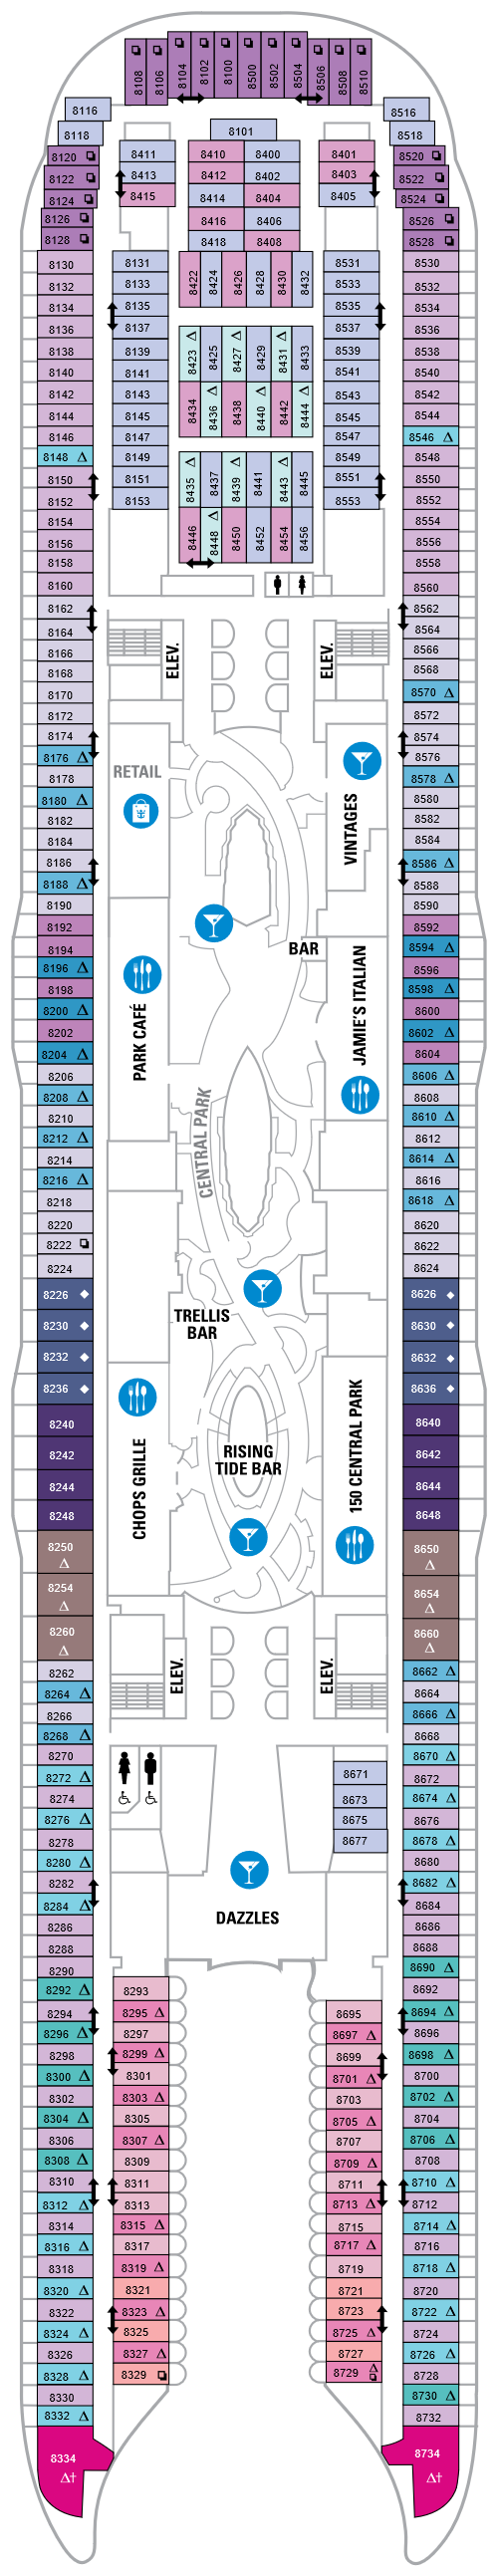 Symphony Of The Seas Deck 8 layout